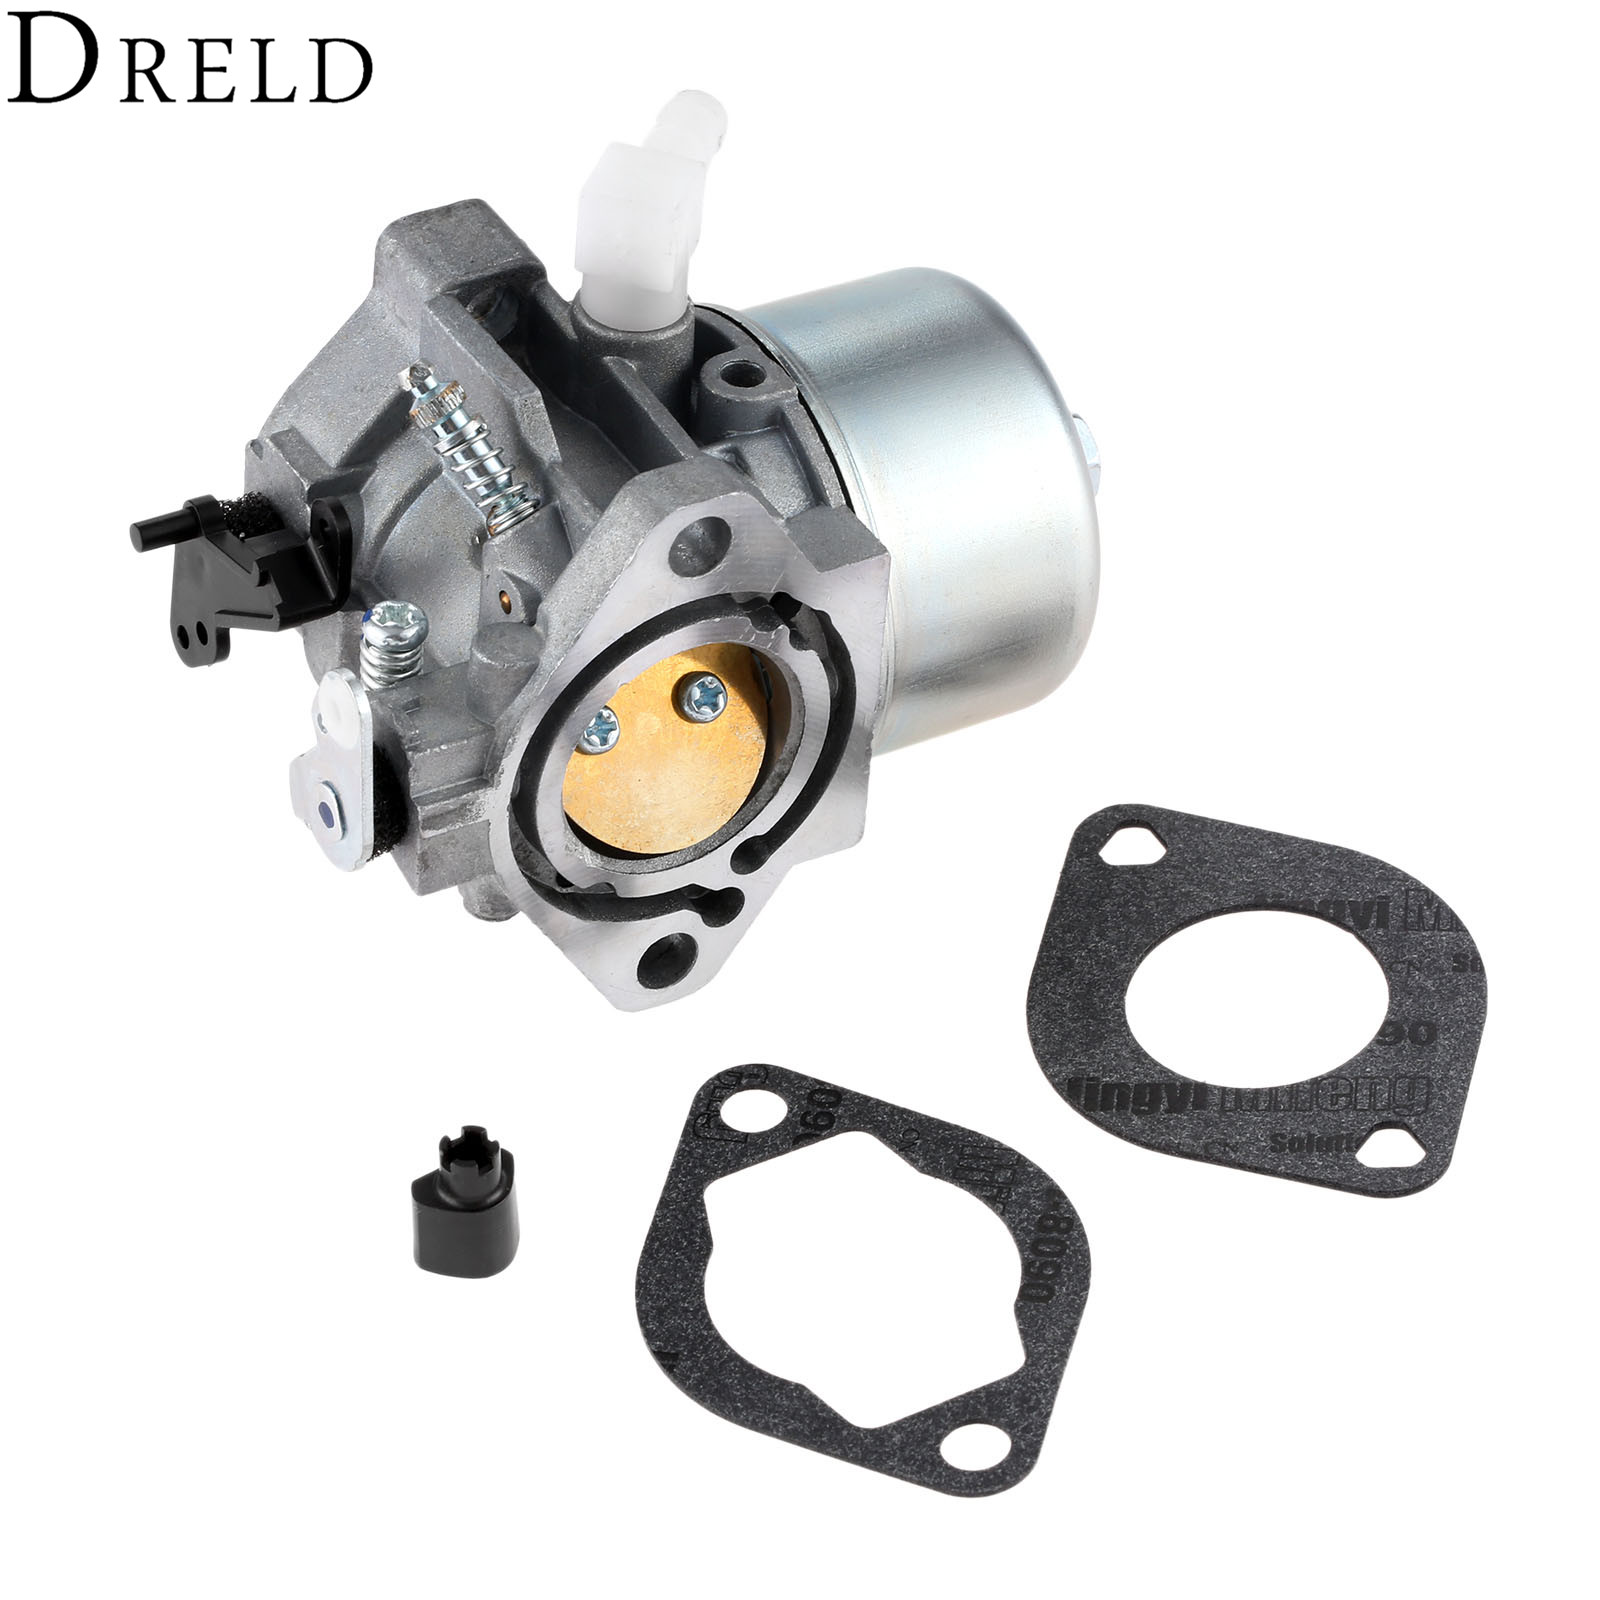 купить DRELD Replacement Carburetor with 2pcs Carburetor Gasket for Briggs & Stratton 699831 Carb Lawn Mower Garden Power Tools по цене 1835.25 рублей